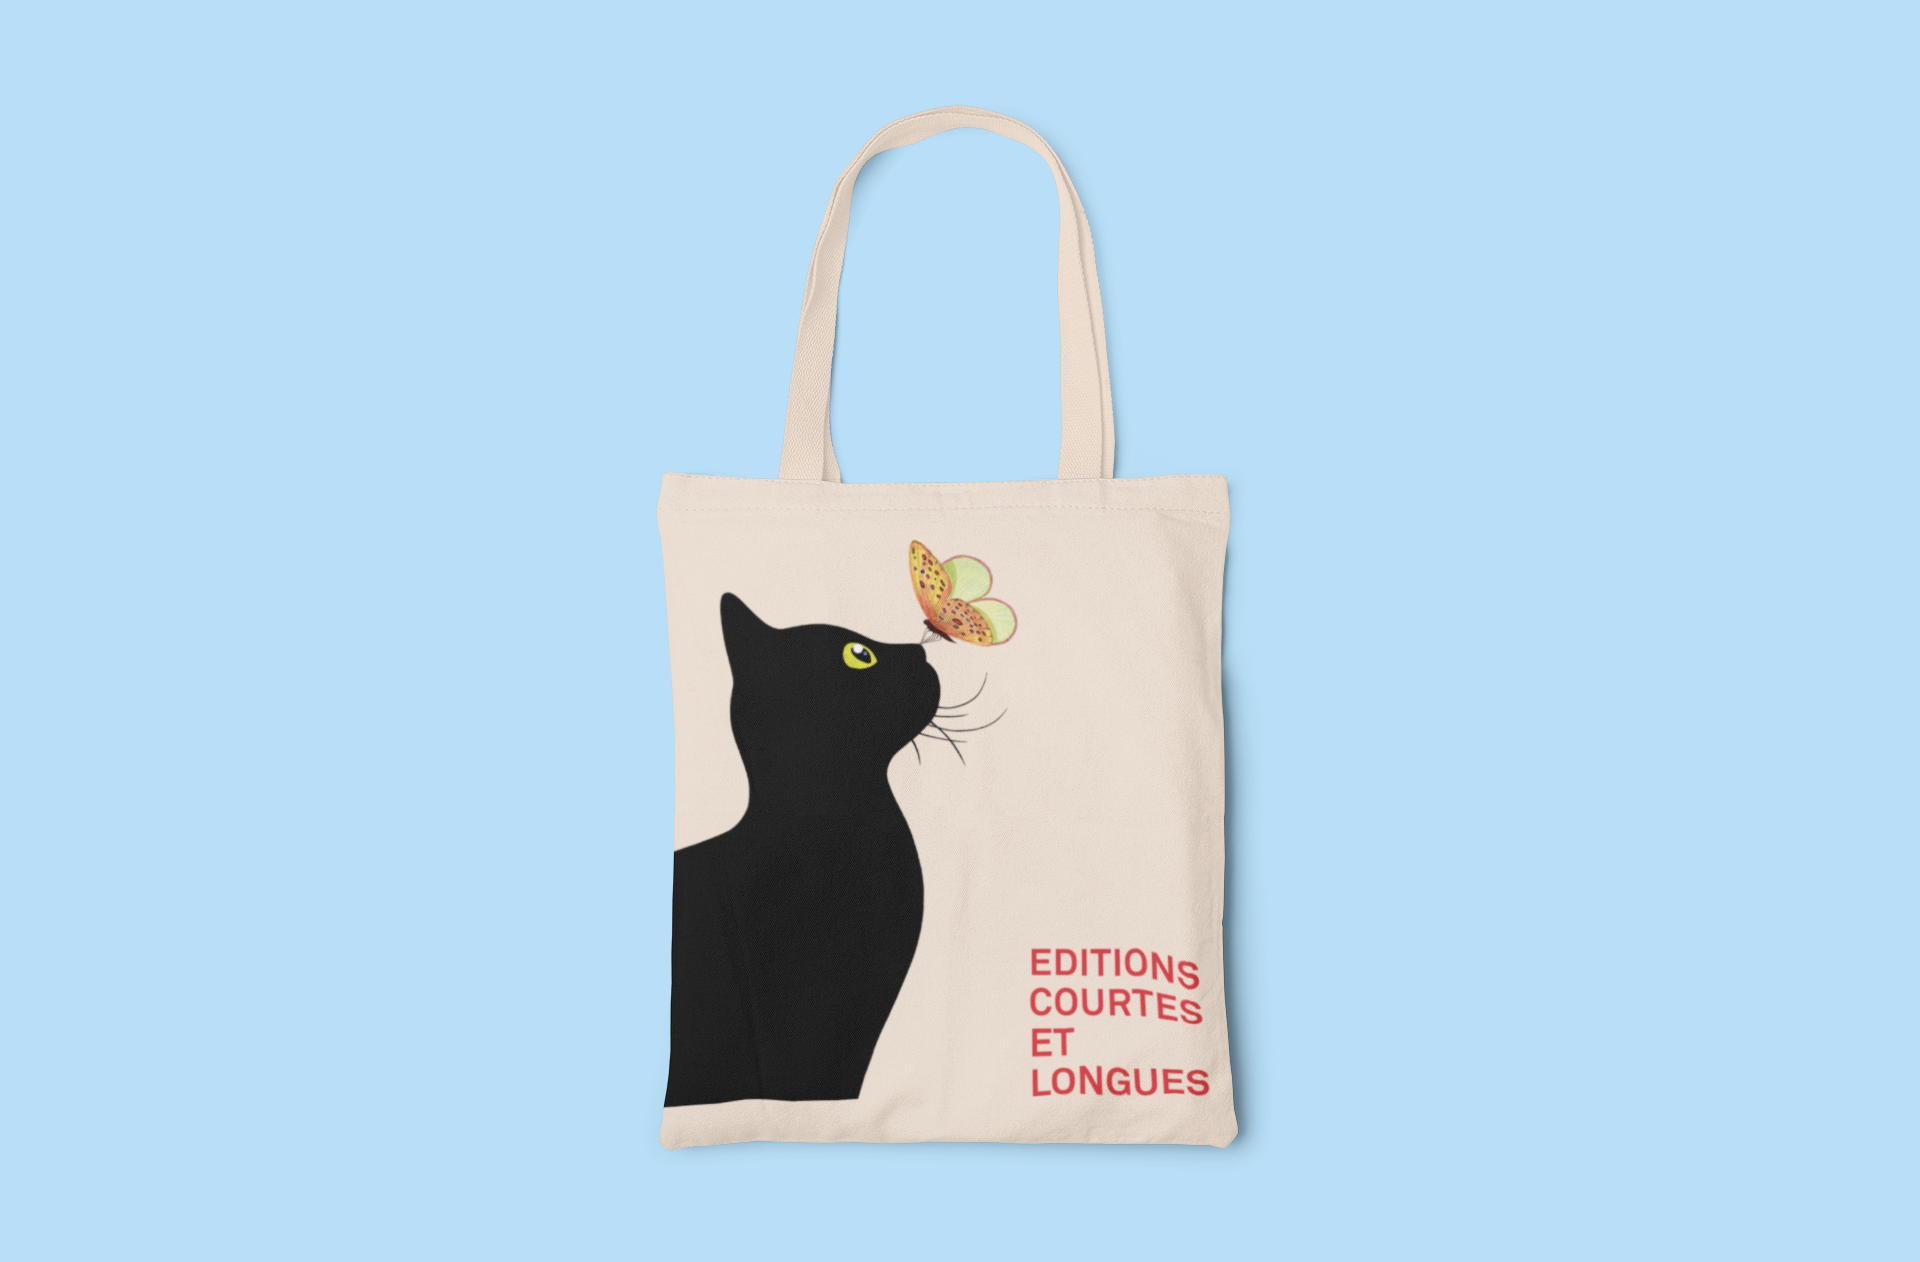 mockup-of-a-sublimated-tote-bag-with-customizable-strap-on-a-colored-surface-3122-el1